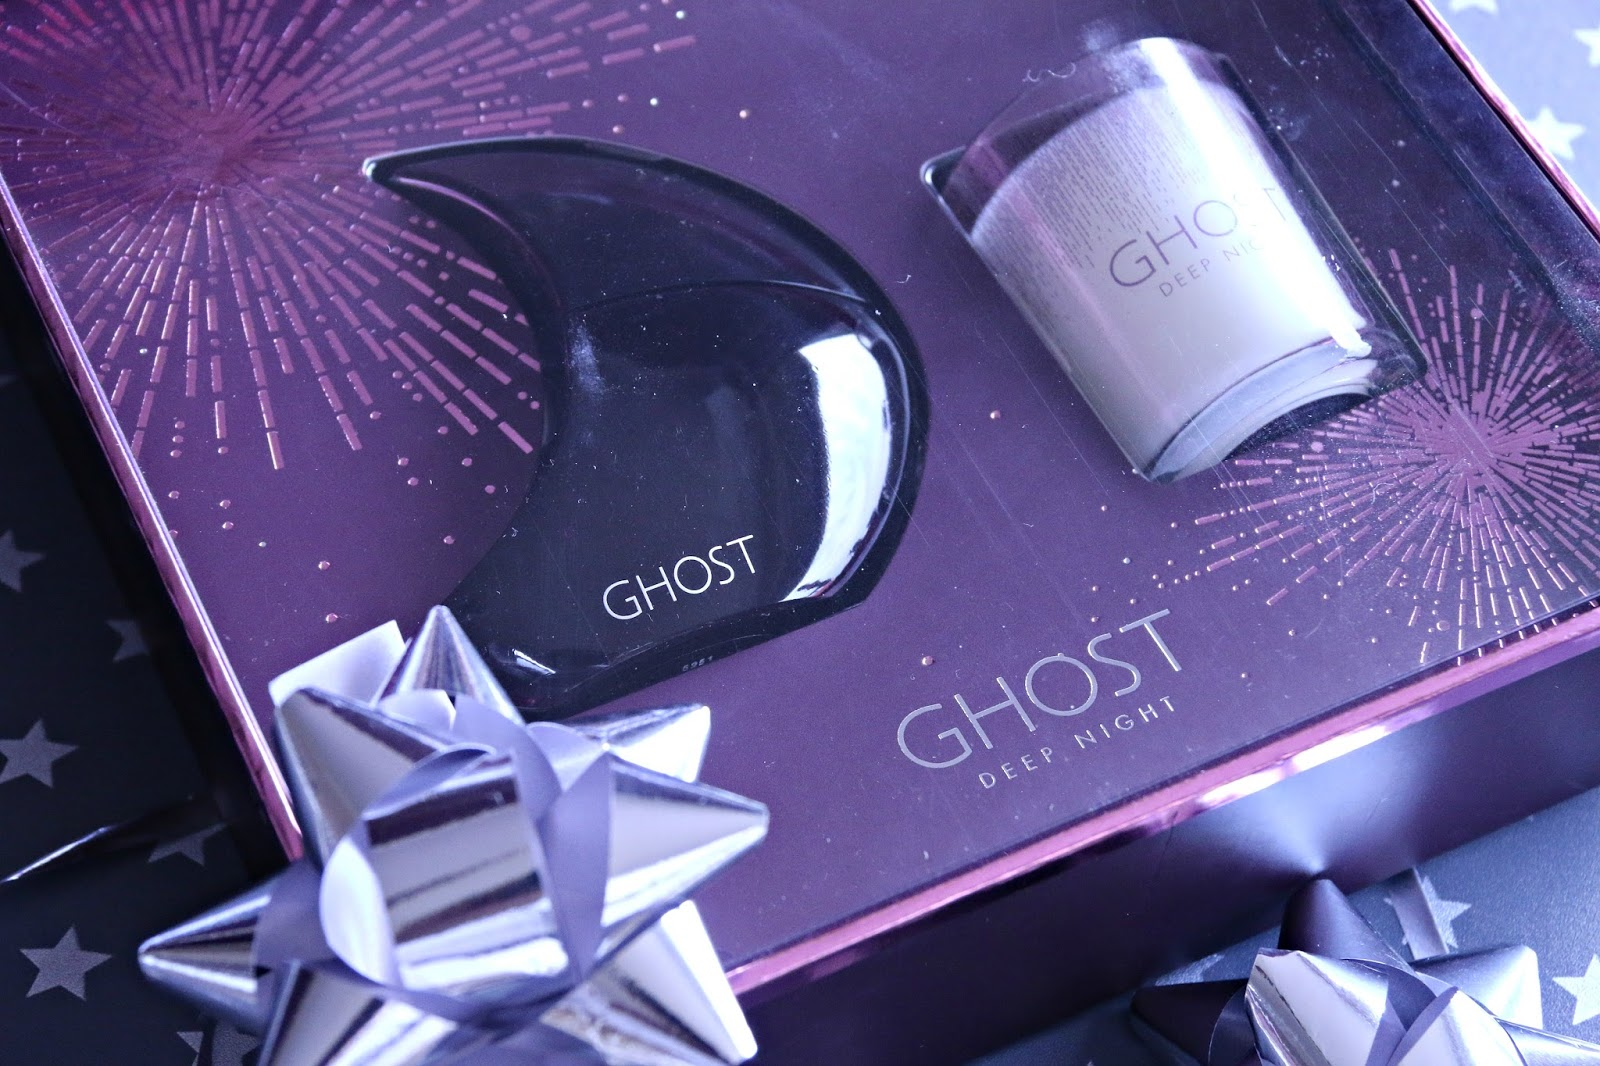 Ghost Deep Night Fragrance Gift Set Christmas 2016 Image